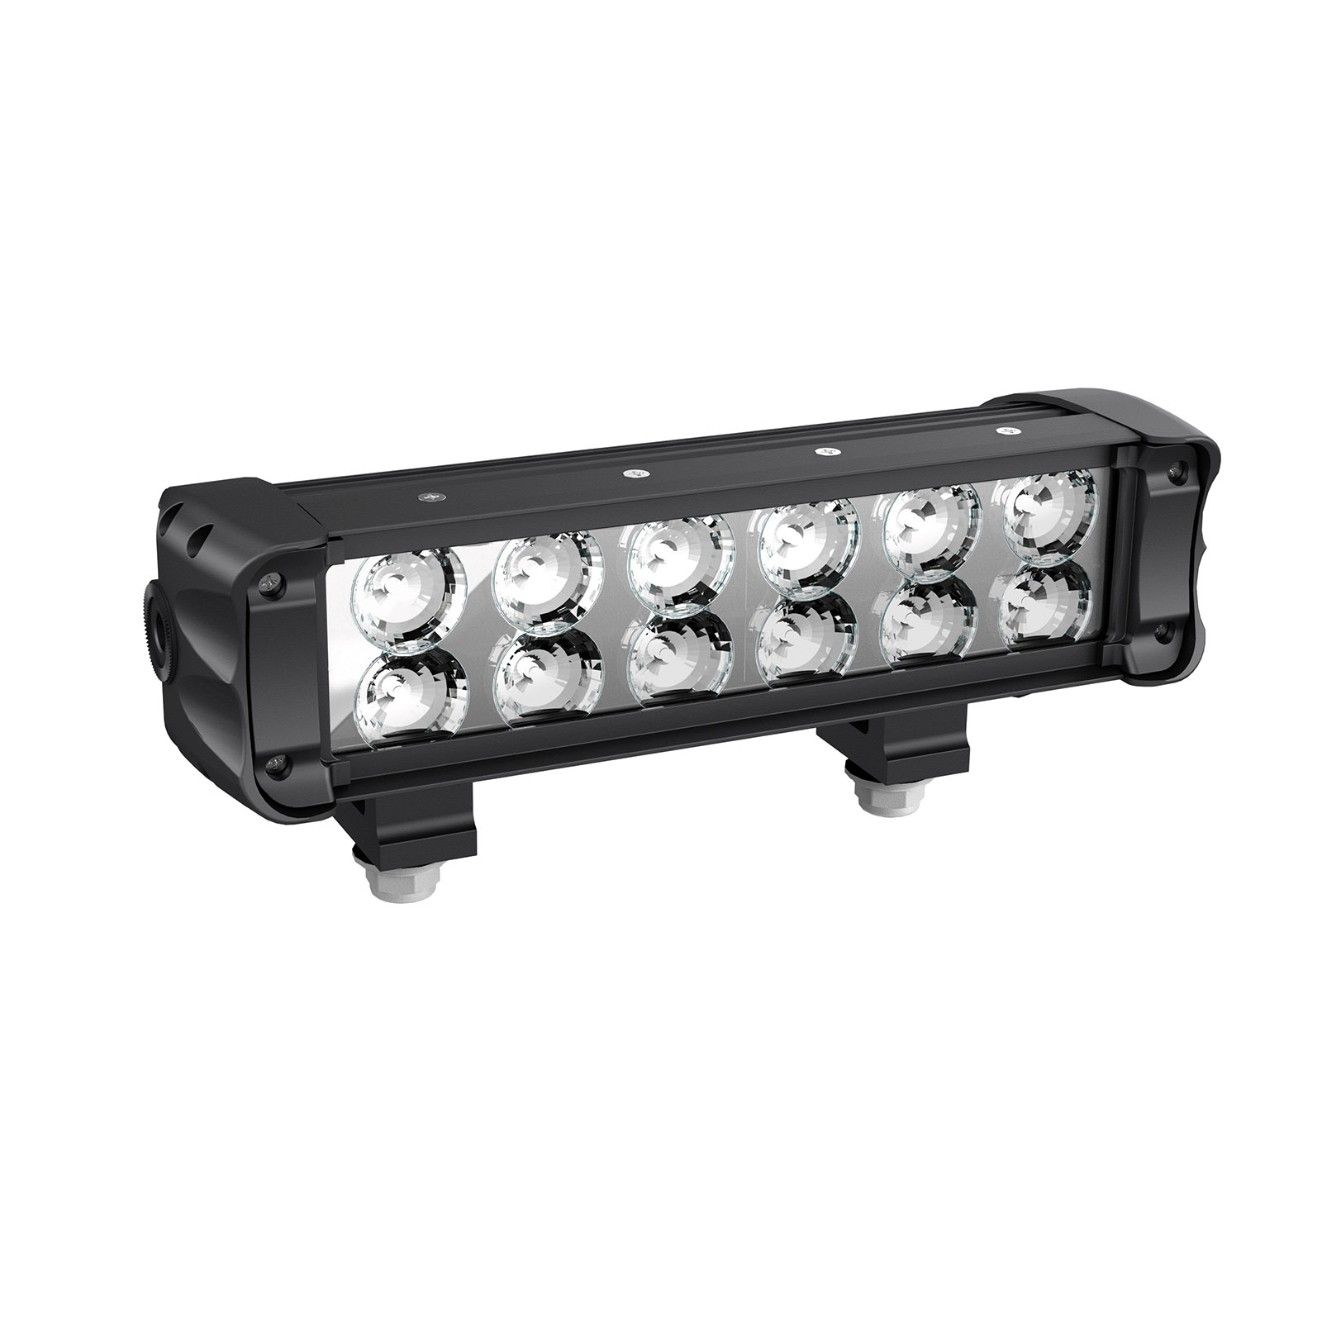 10 (25 CM) DOUBLE STACKED LED LIGHT BAR (60 WATTS)